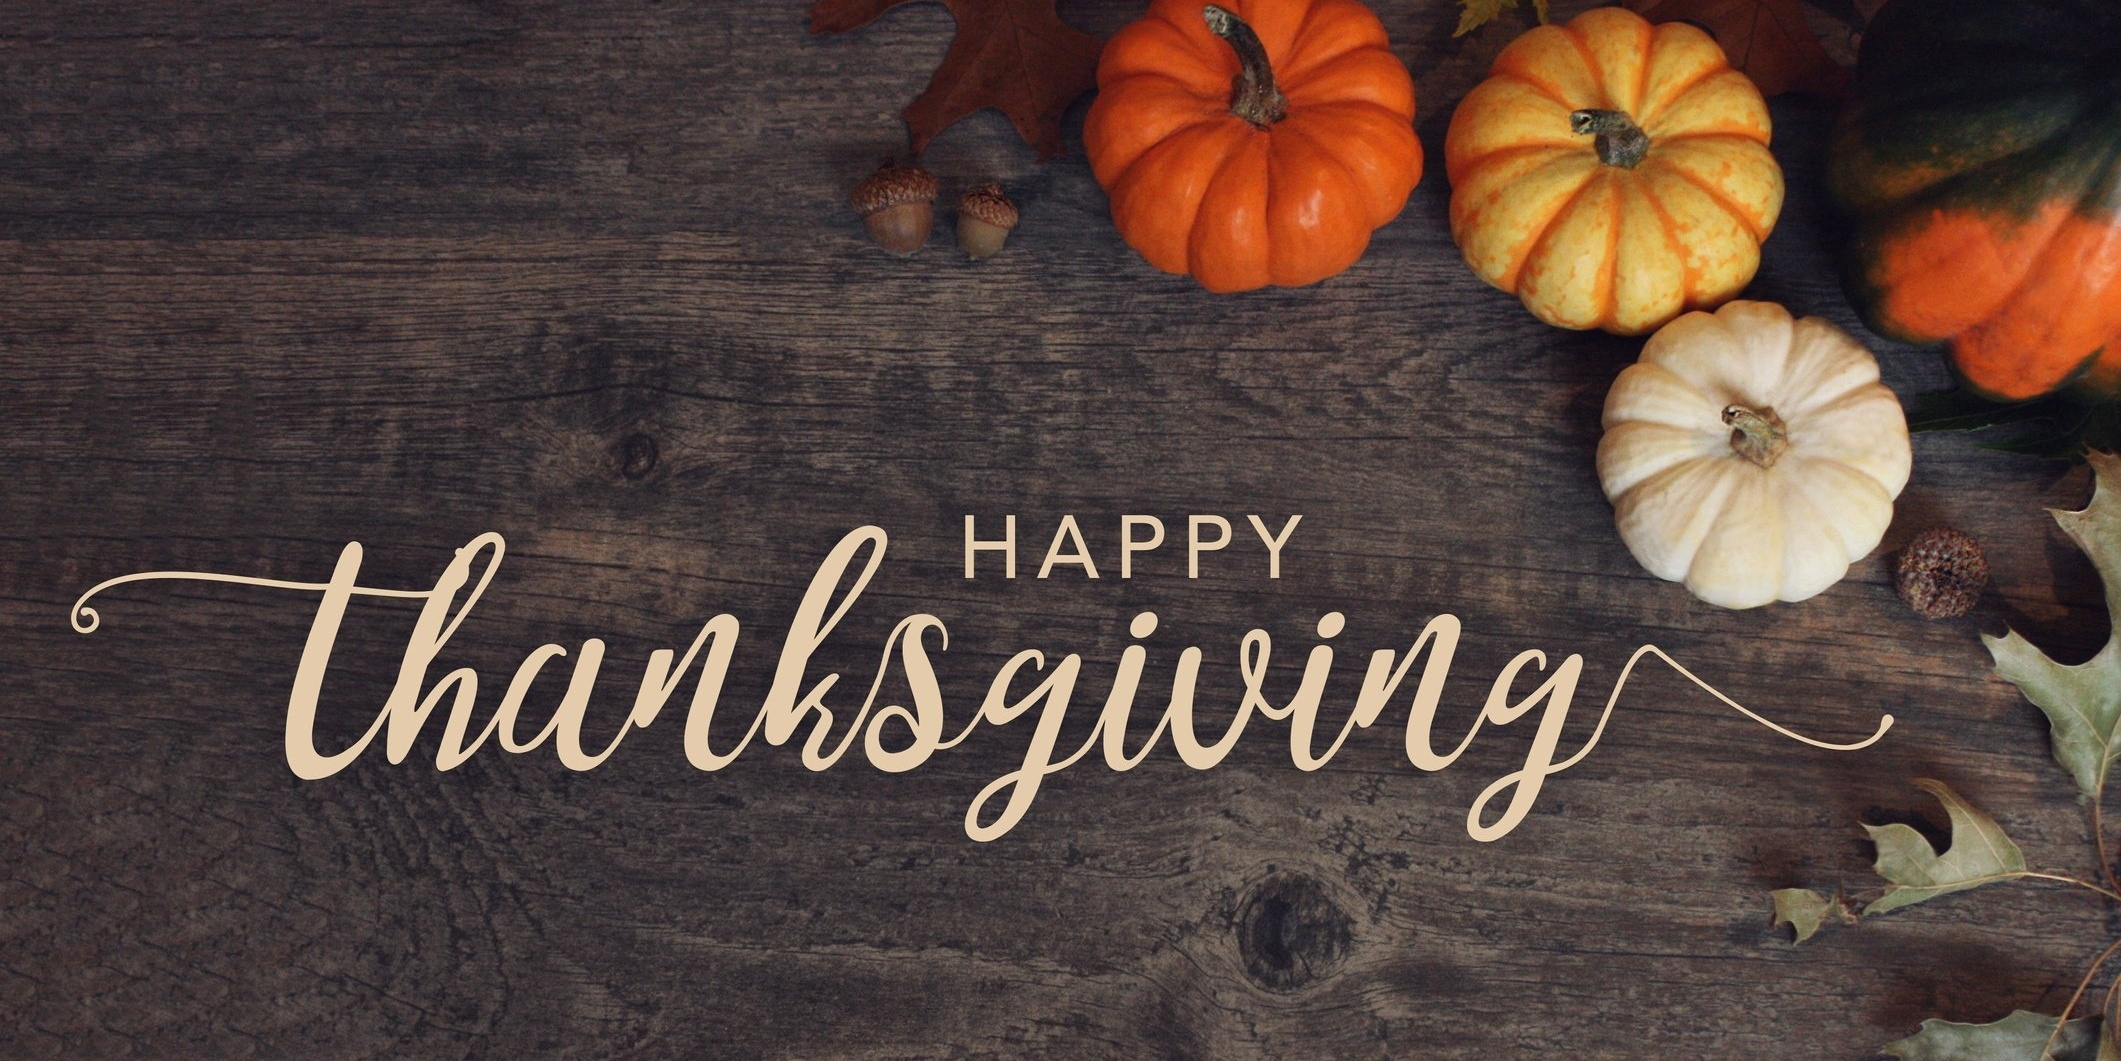 Thankful. Grateful. Blessed. Happy Thanksgiving from LeadG2 and The Center for Sales Strategy